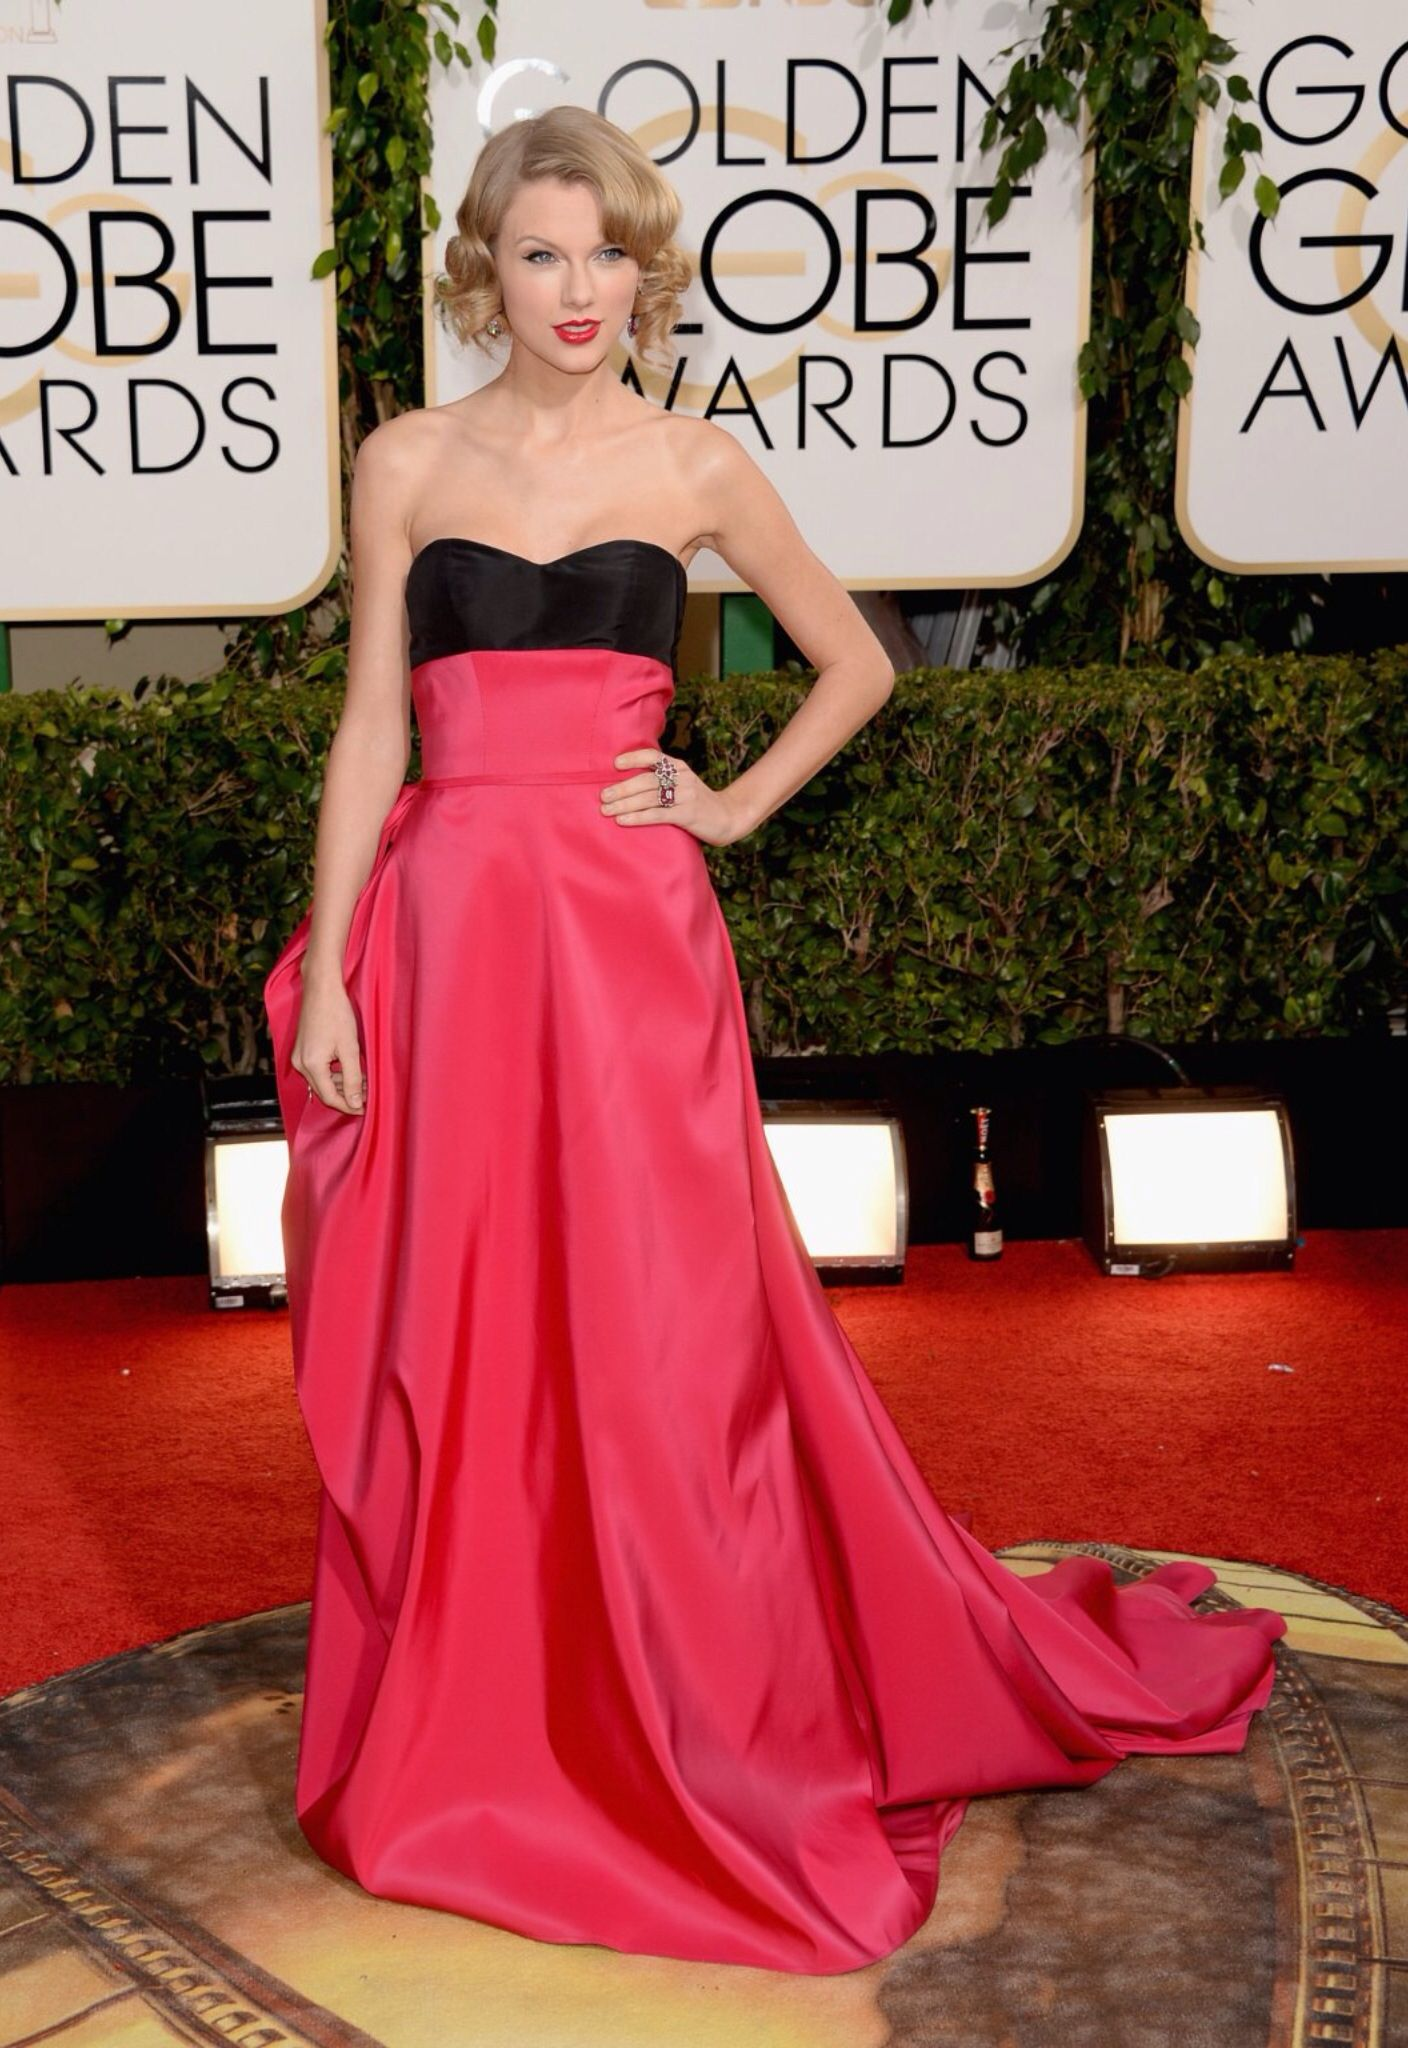 Golden Globes Roter Teppich So Obsessed With This Look From Miss Taylor Swift Taytay